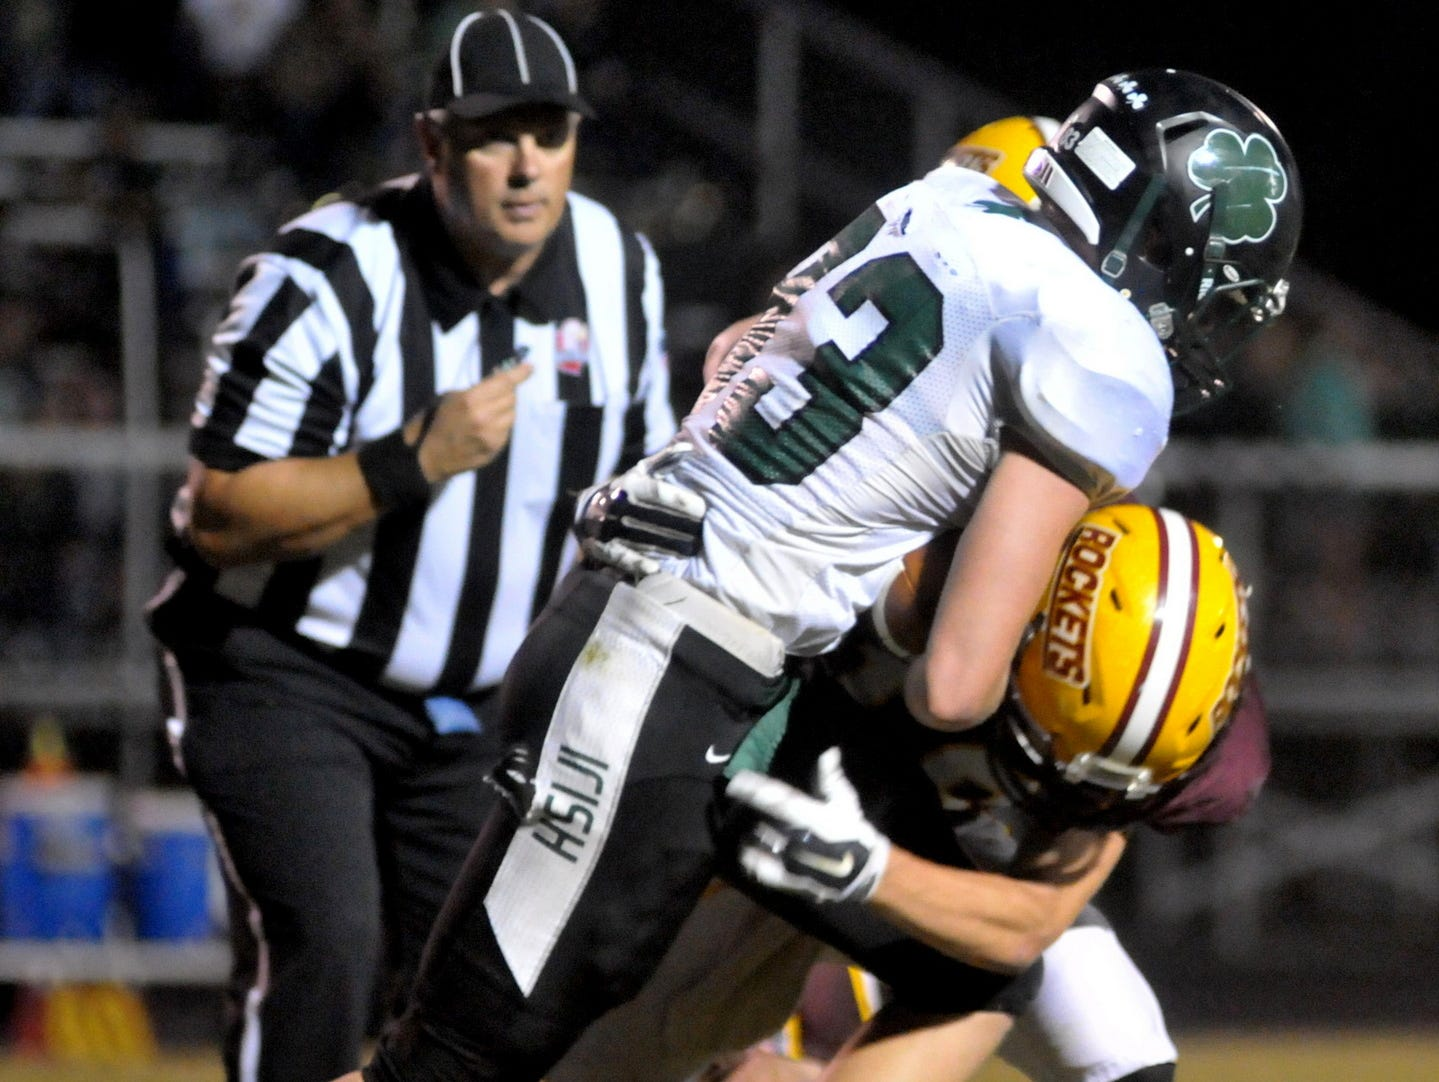 Fisher CatholicÕs Allen McCall runs over a defender Friday night in Sugar Grove. The Irish defeated the Rockets 10-7.